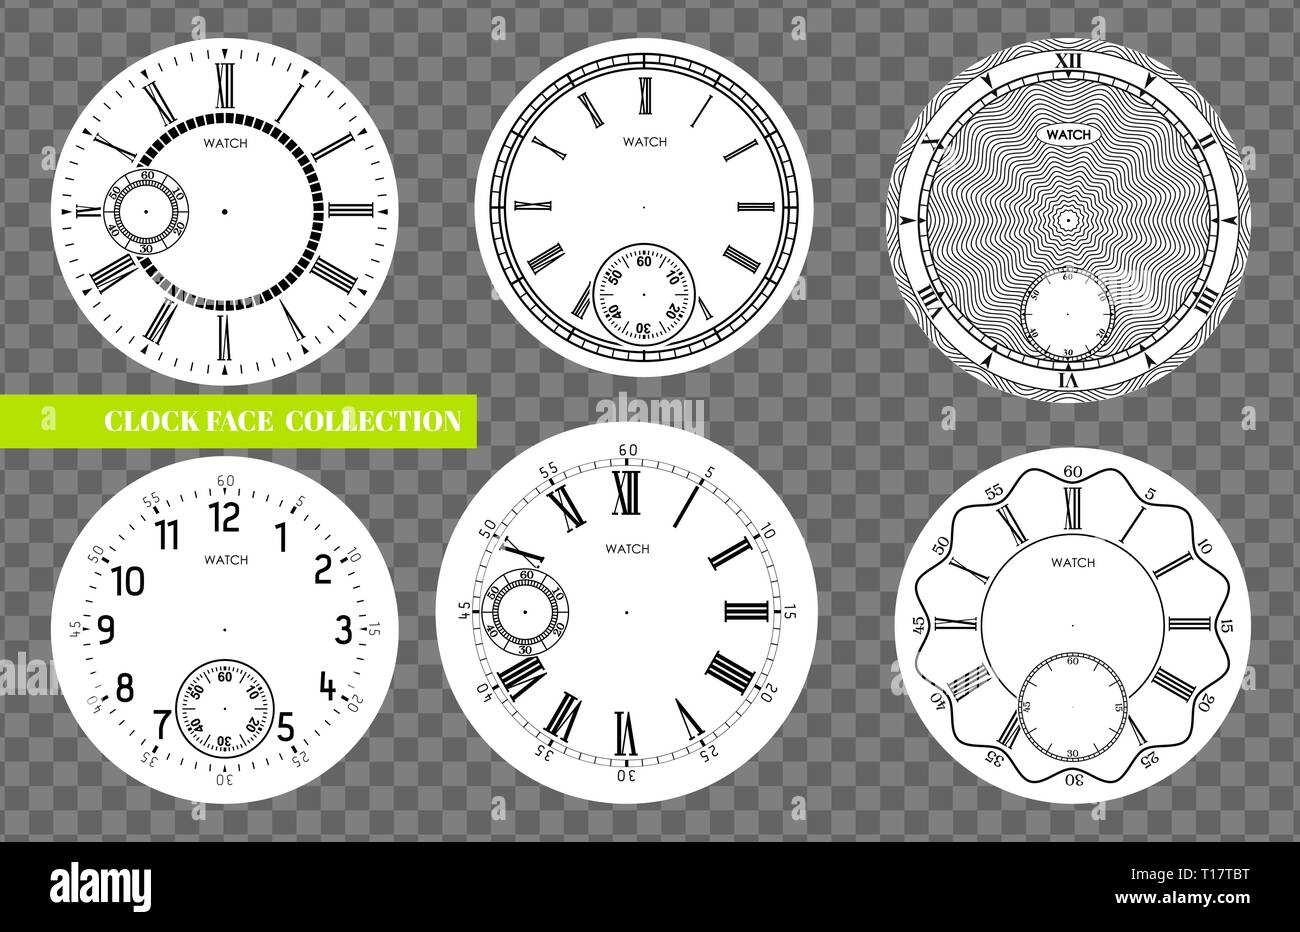 Clock face blank set isolated on transparent background. Vector watch design. Vintage roman numeral clock illustration. Black number round scale - Stock Image